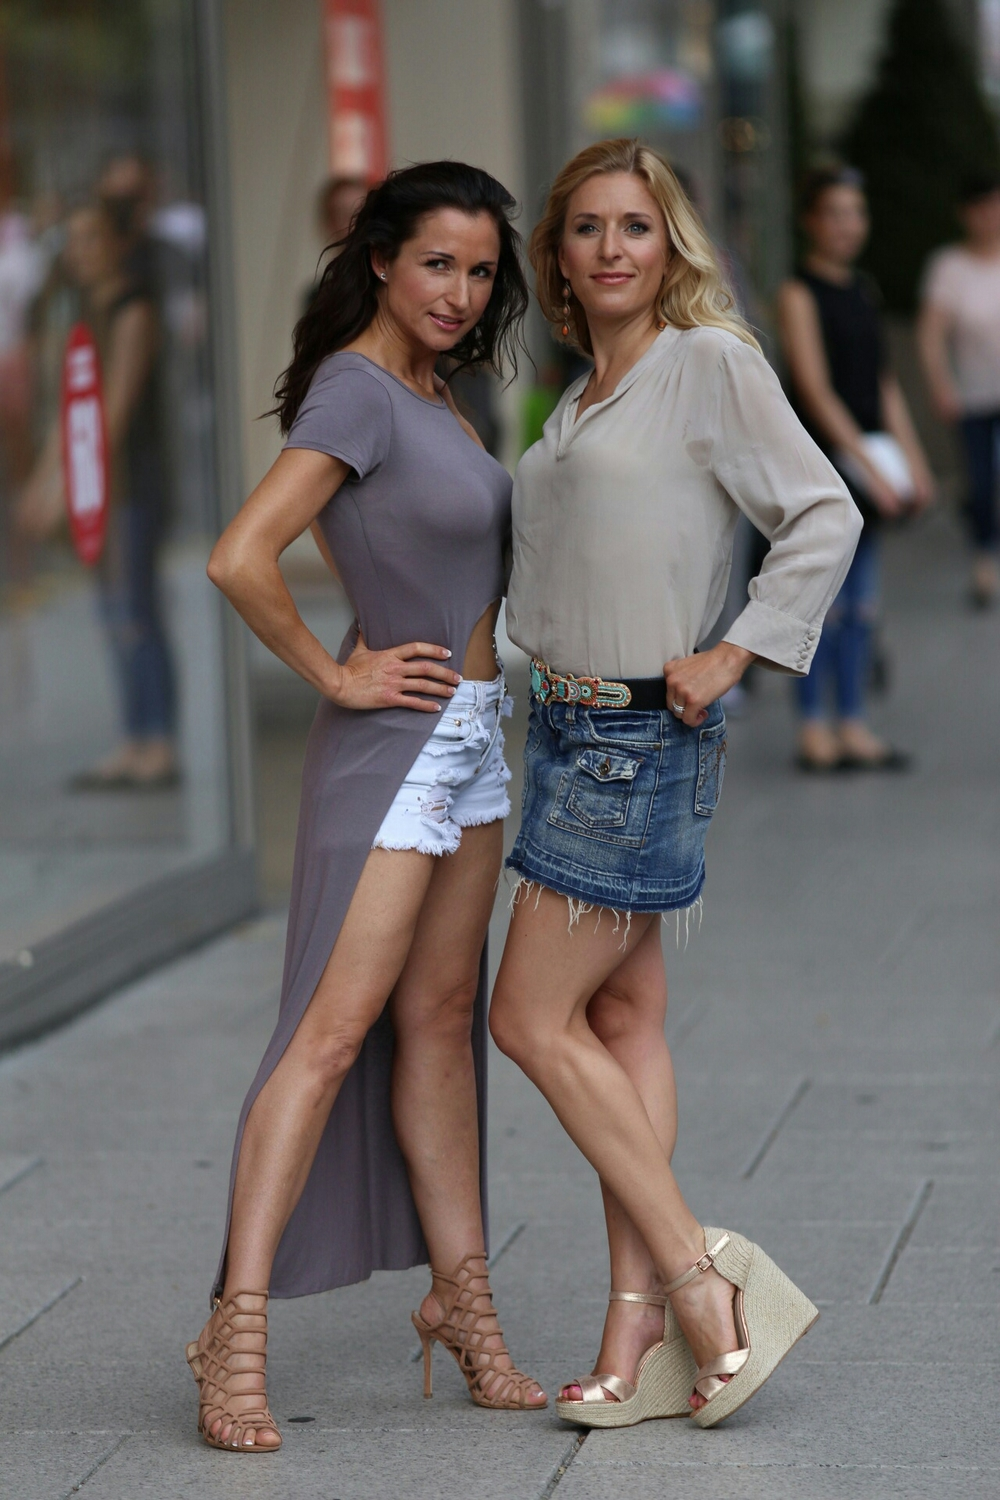 models on the Zeil